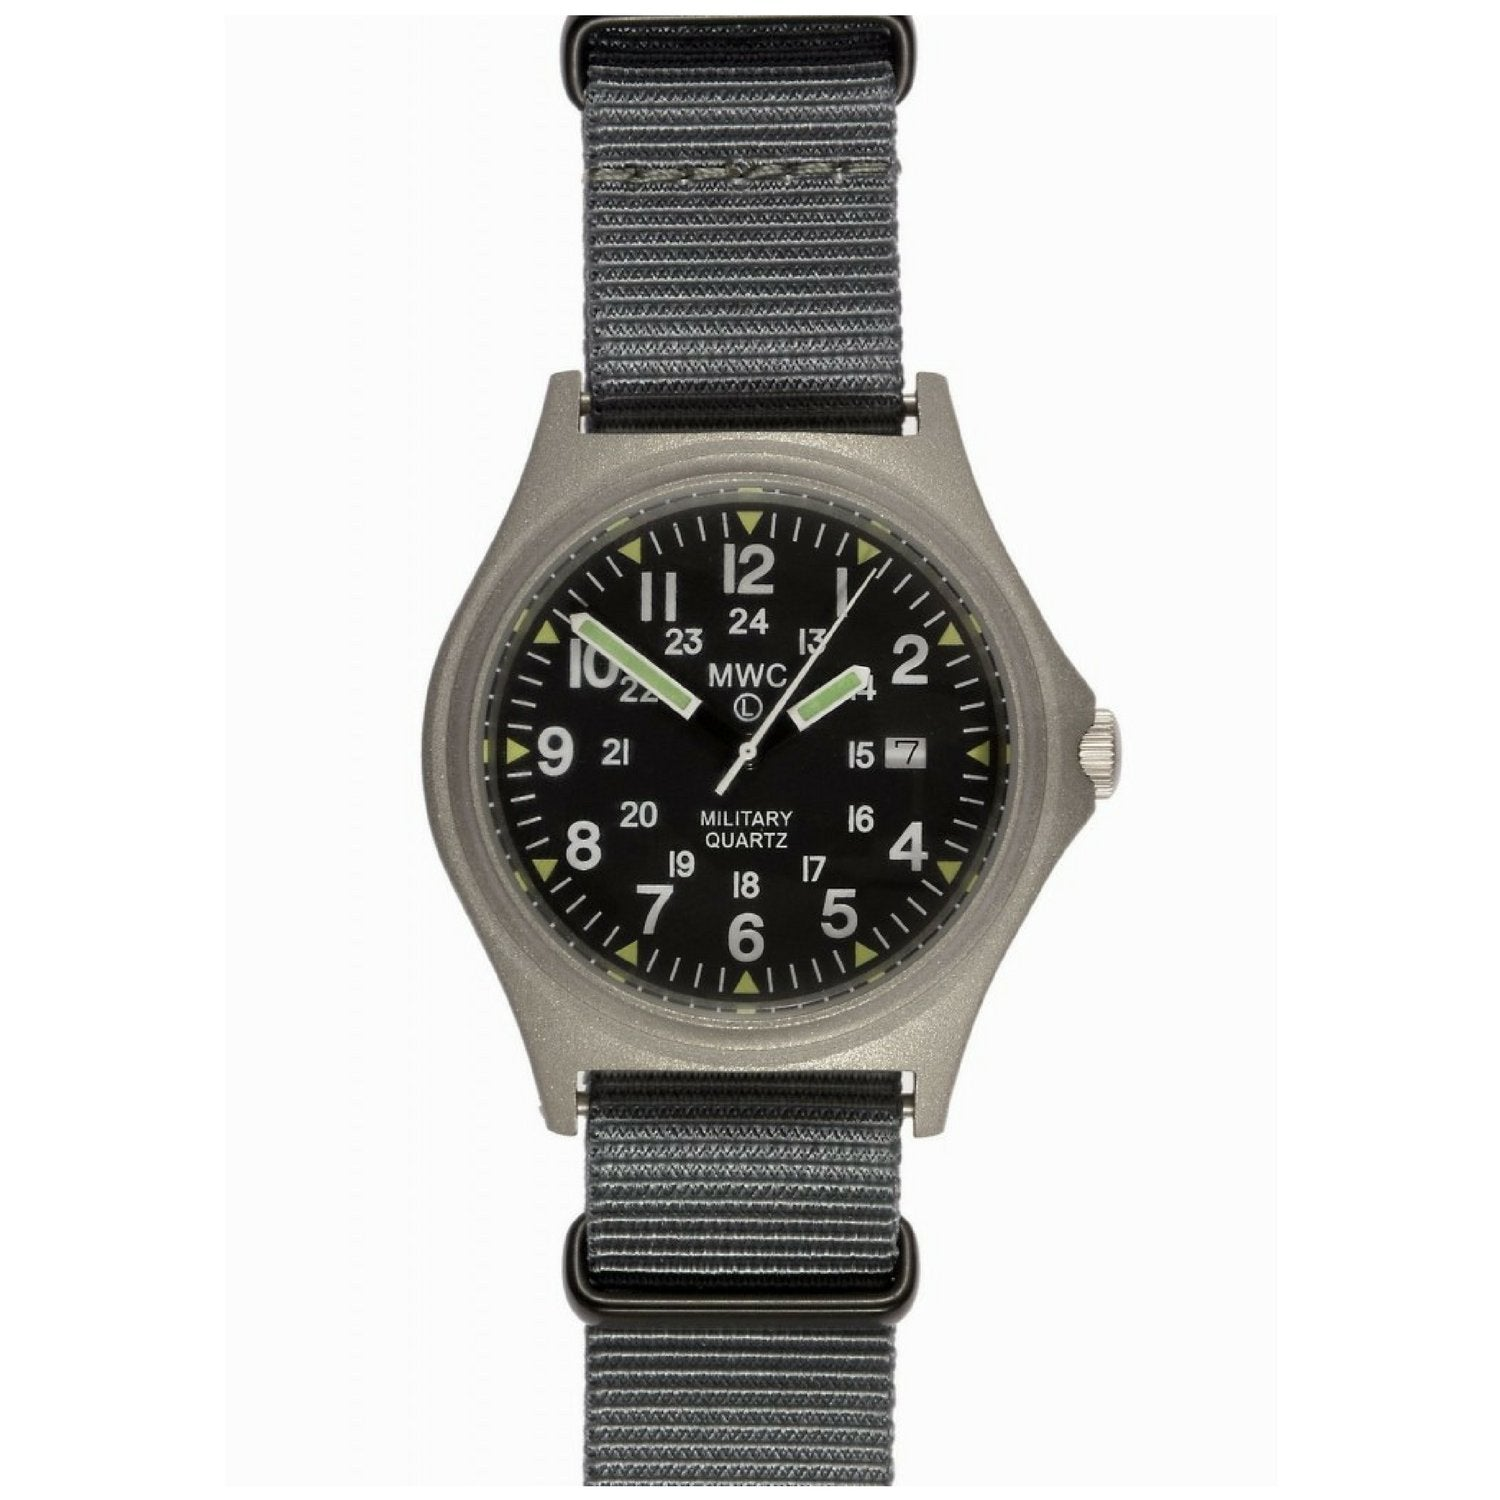 MWC G10BH 12/24 50m Water Resistant Military Watch (Stainless Steel or PVD)